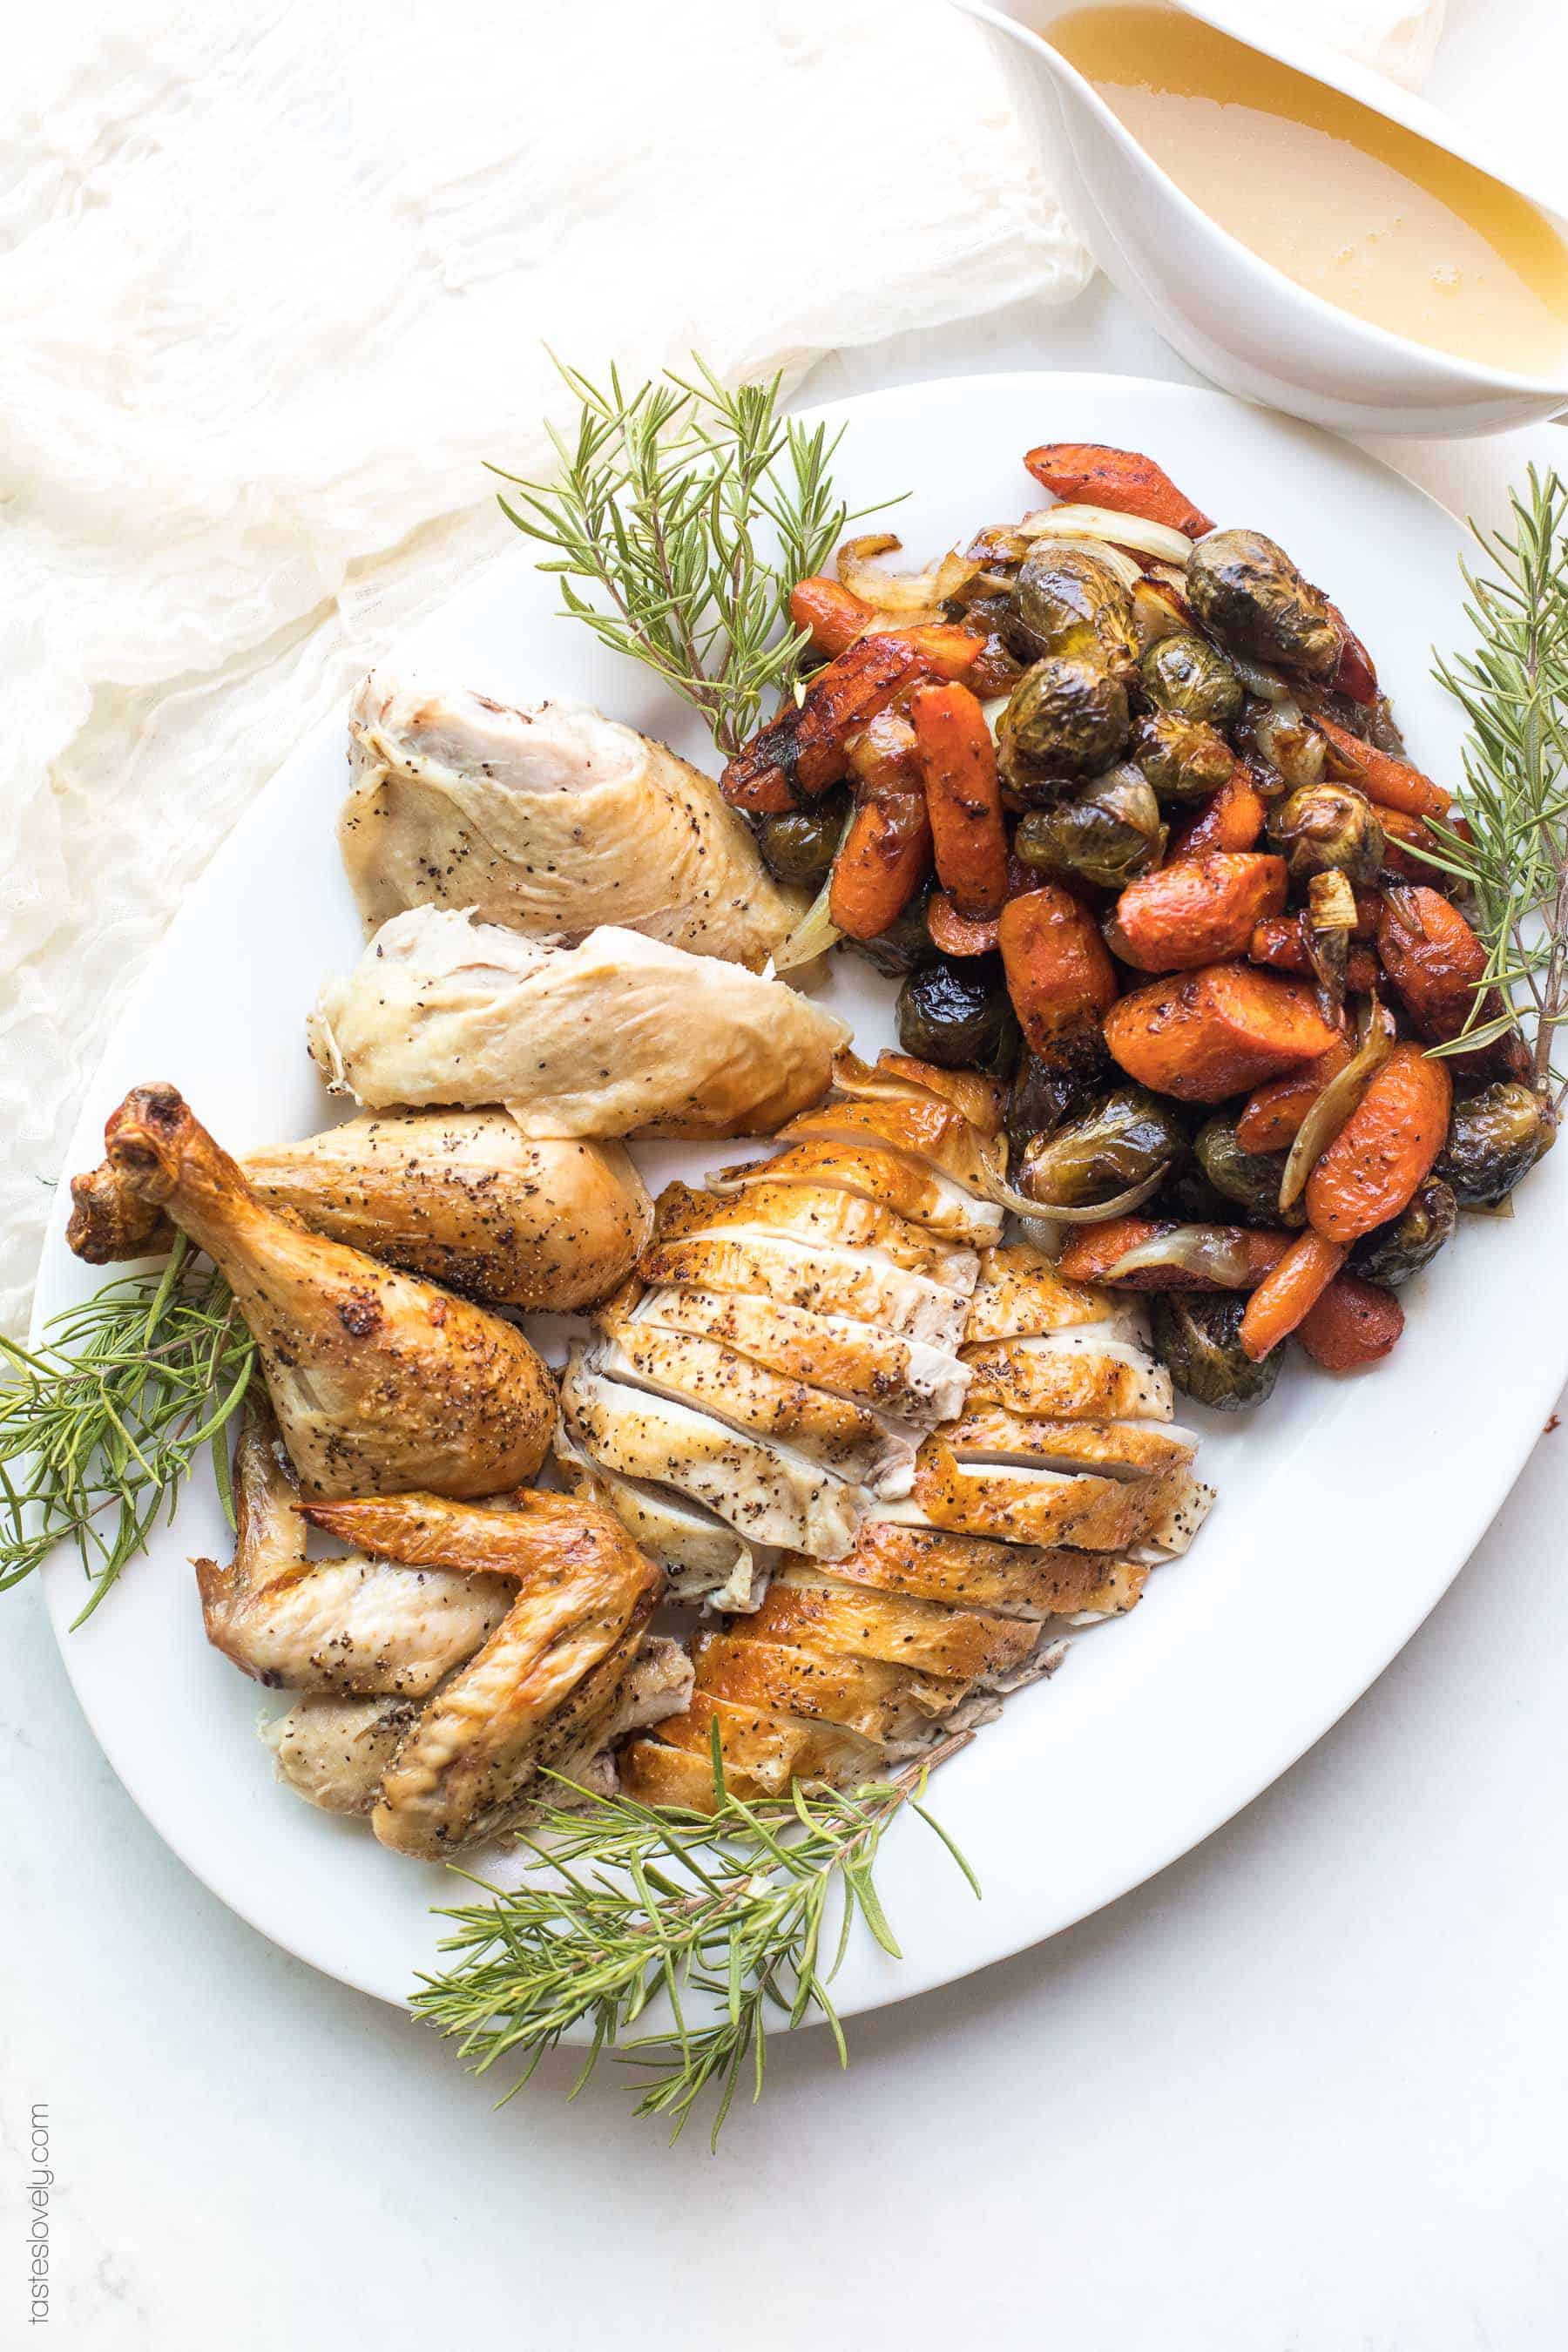 Cut up roast chicken on a platter with roasted root vegetables and sprigs of rosemary herbs